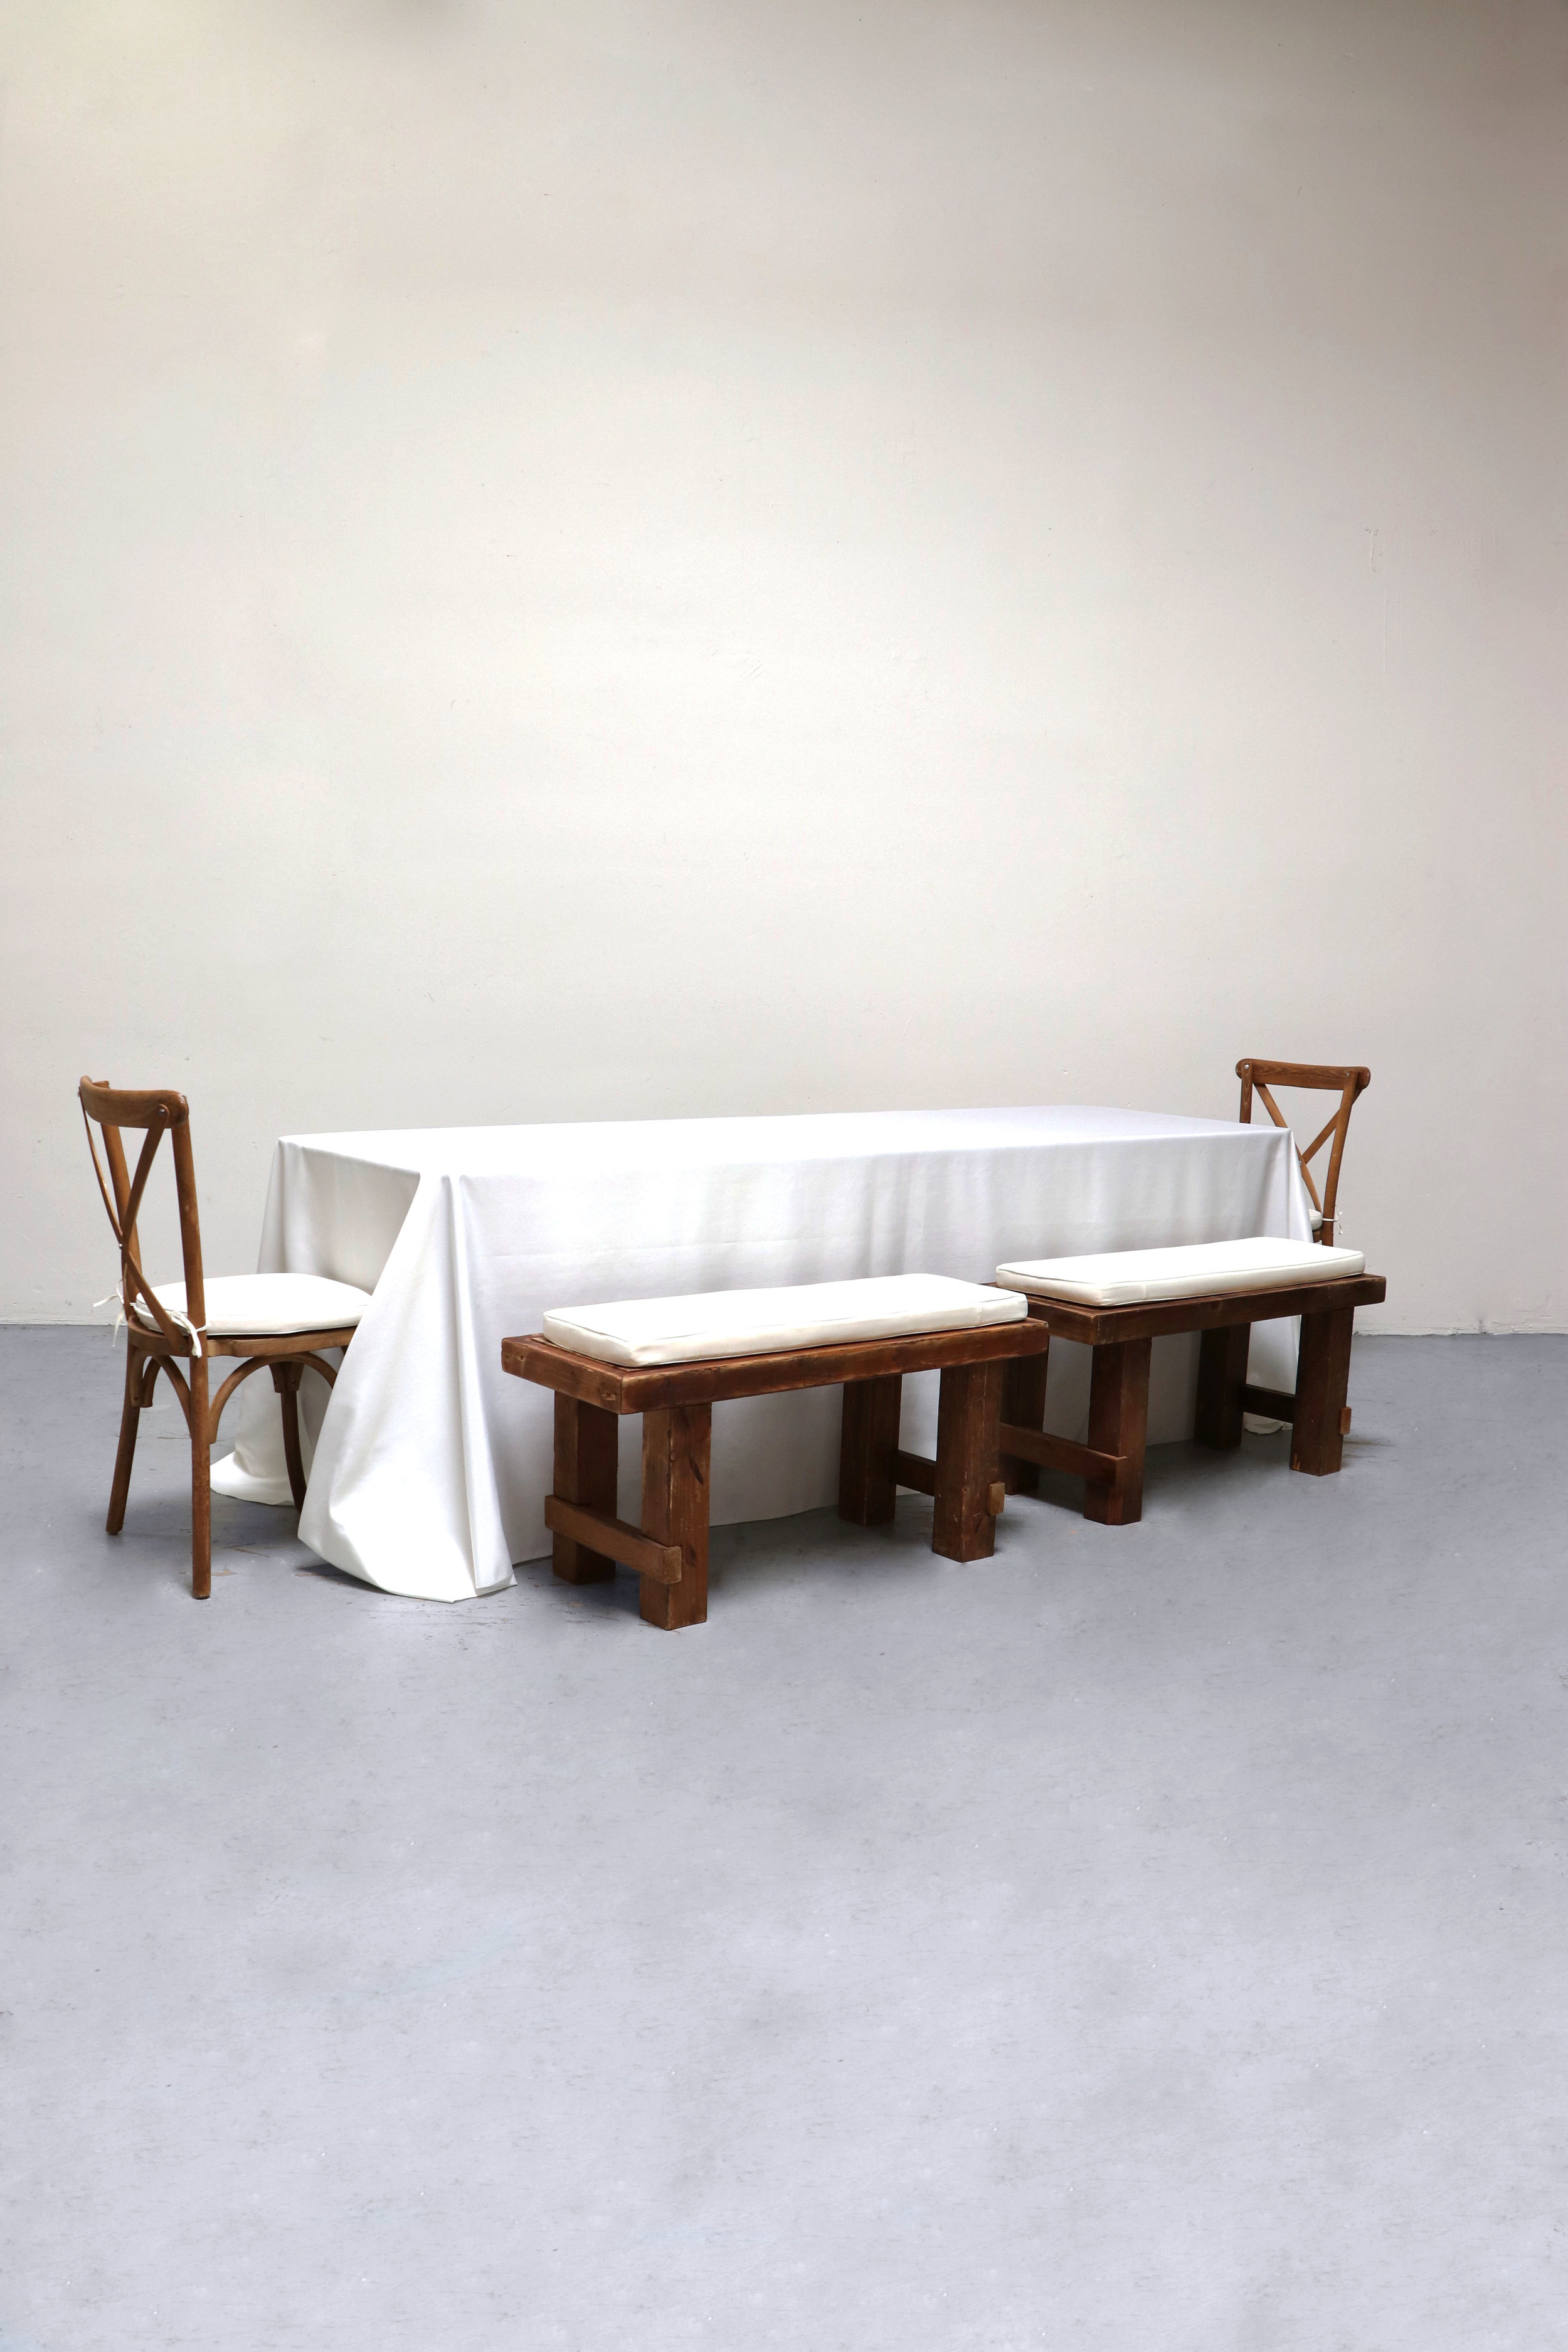 $100 1 Banquet Table with 4 Short Benches & 2 Cross-Back Chairs